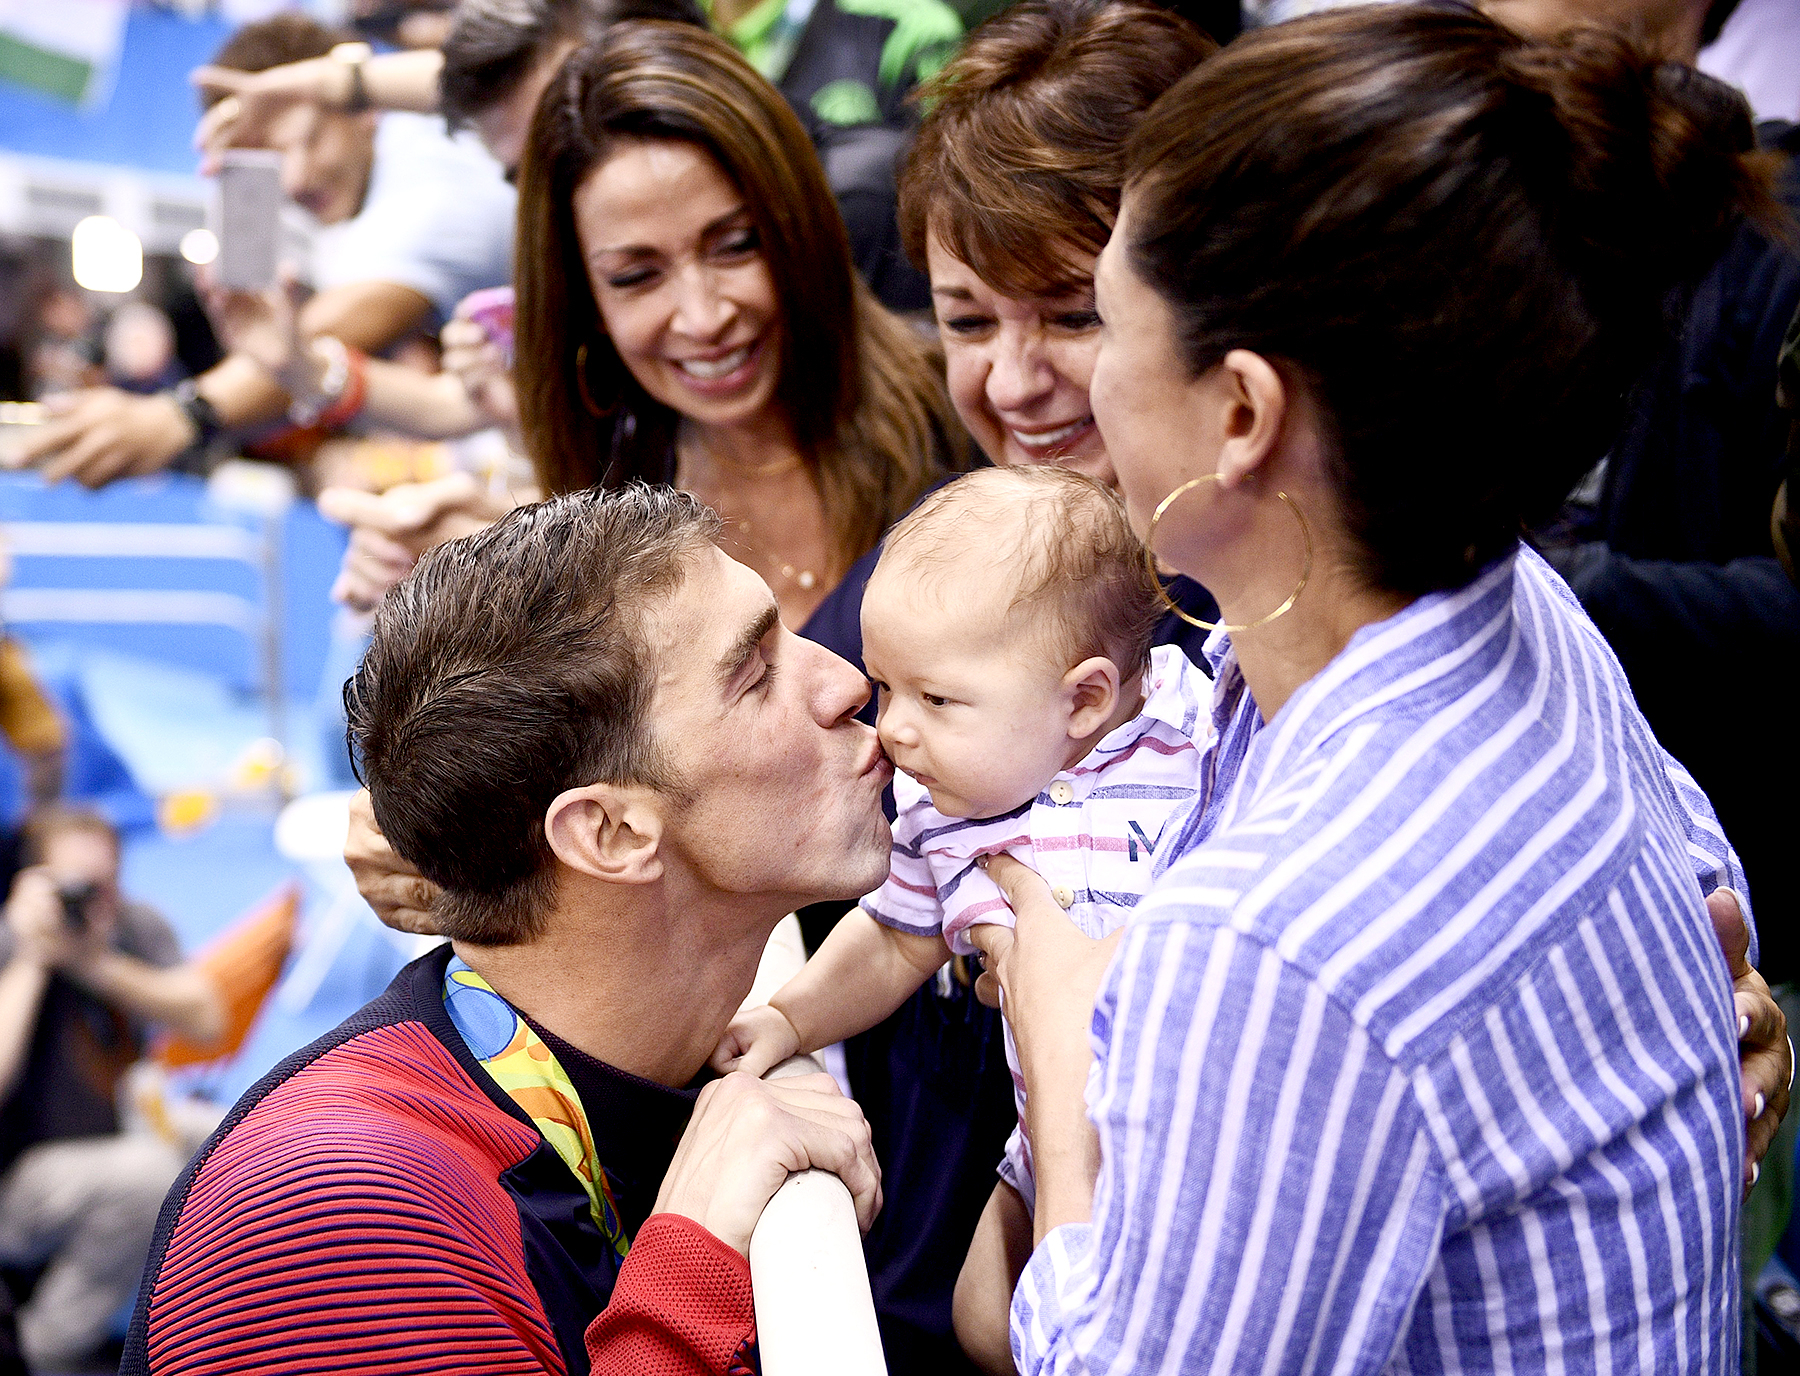 USA's Michael Phelps kisses his son, Boomer, next to his fiancée, Nicole Johnson (R) and mother Deborah (C) after he won the men's 200-meter butterfly final at the Rio 2016 Olympic Games at the Olympic Aquatics Stadium in Rio de Janeiro on August 9, 2016.